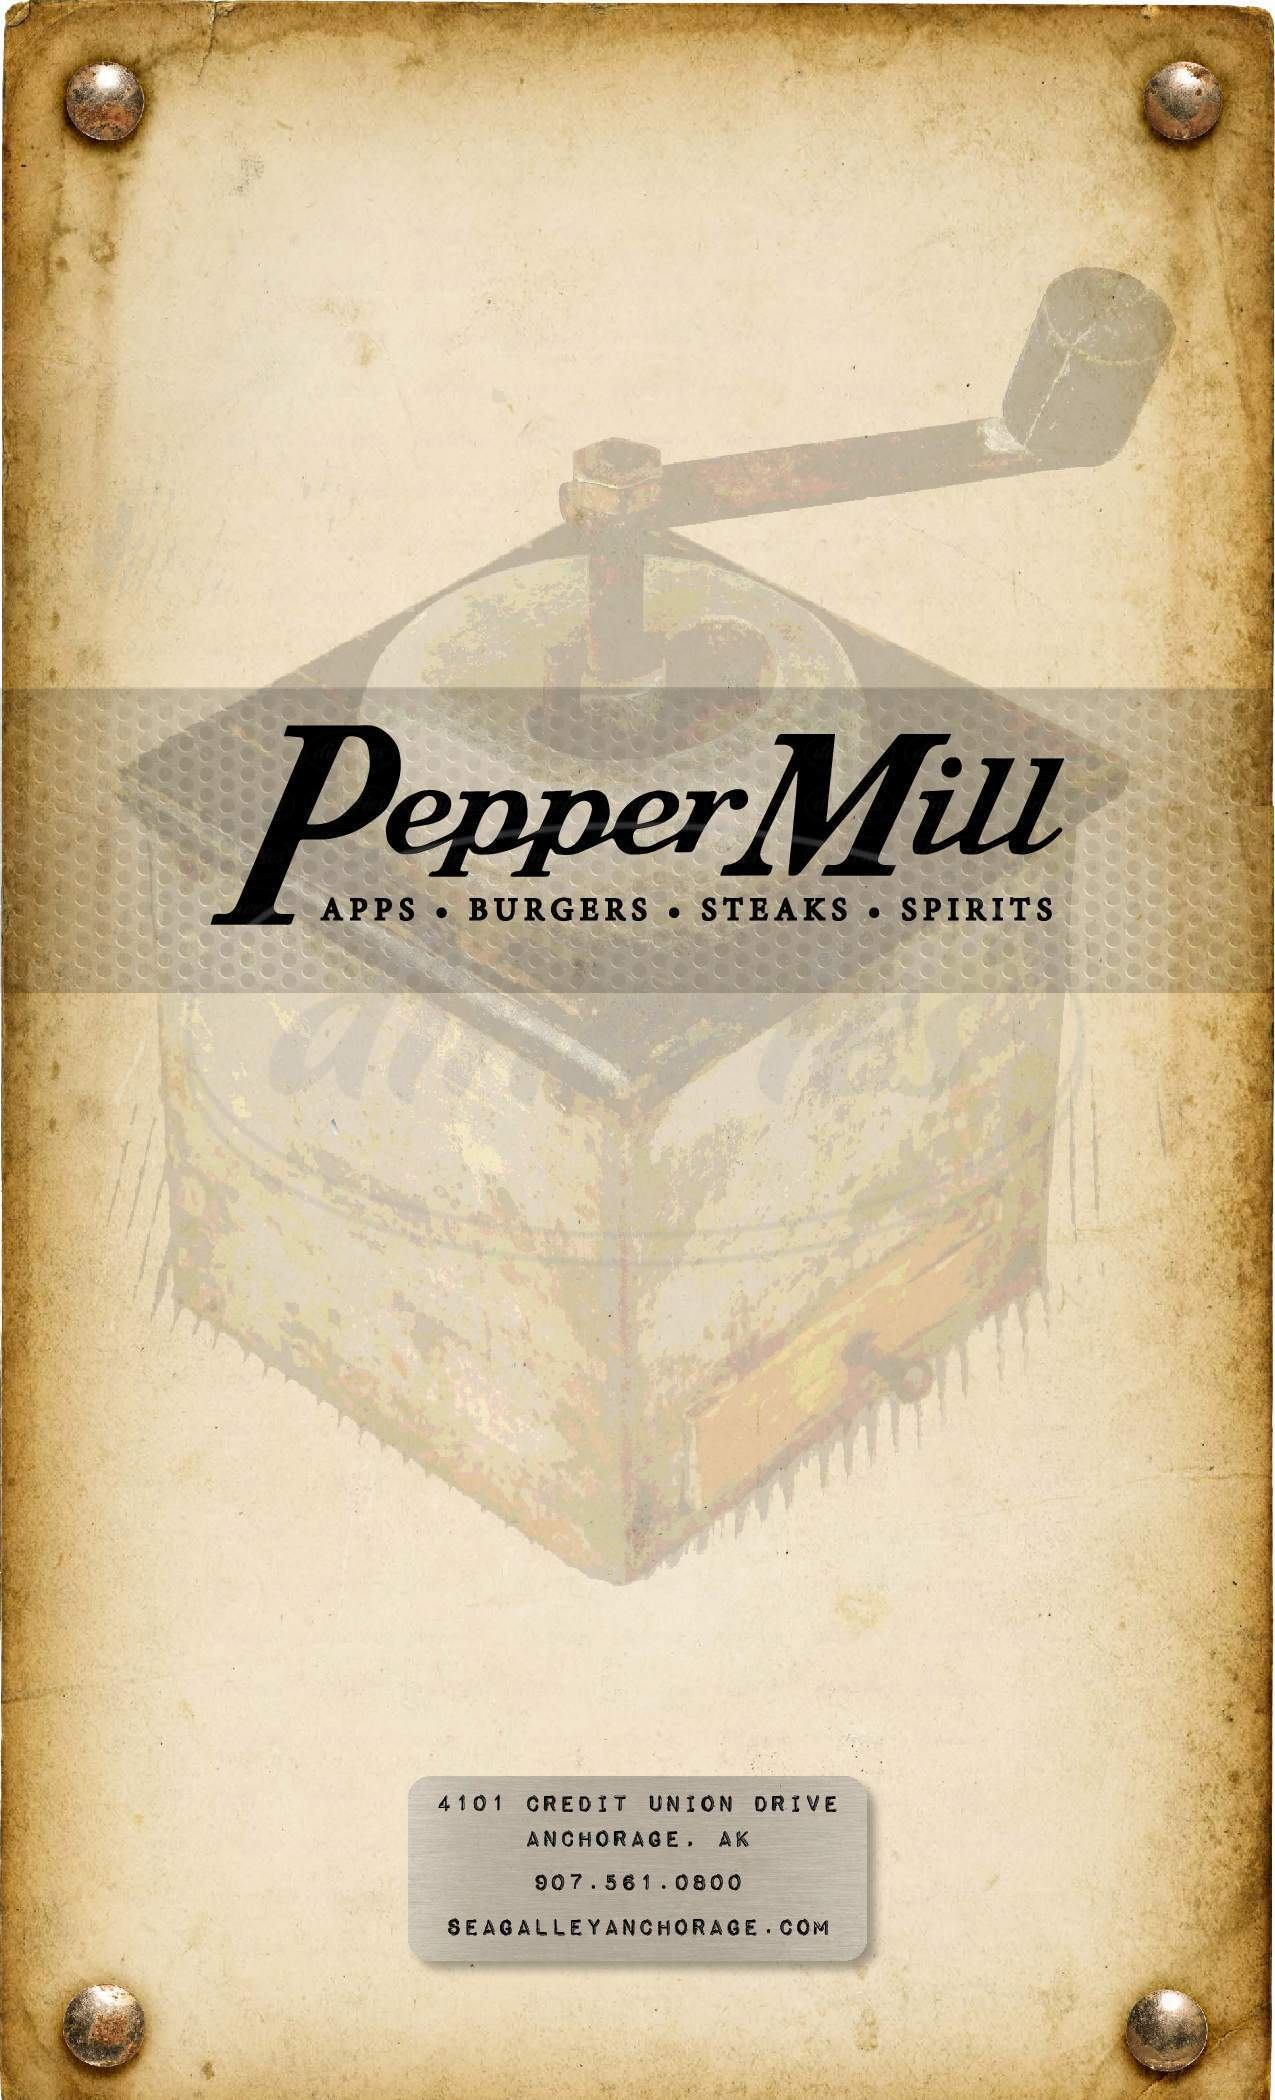 menu for Pepper Mill